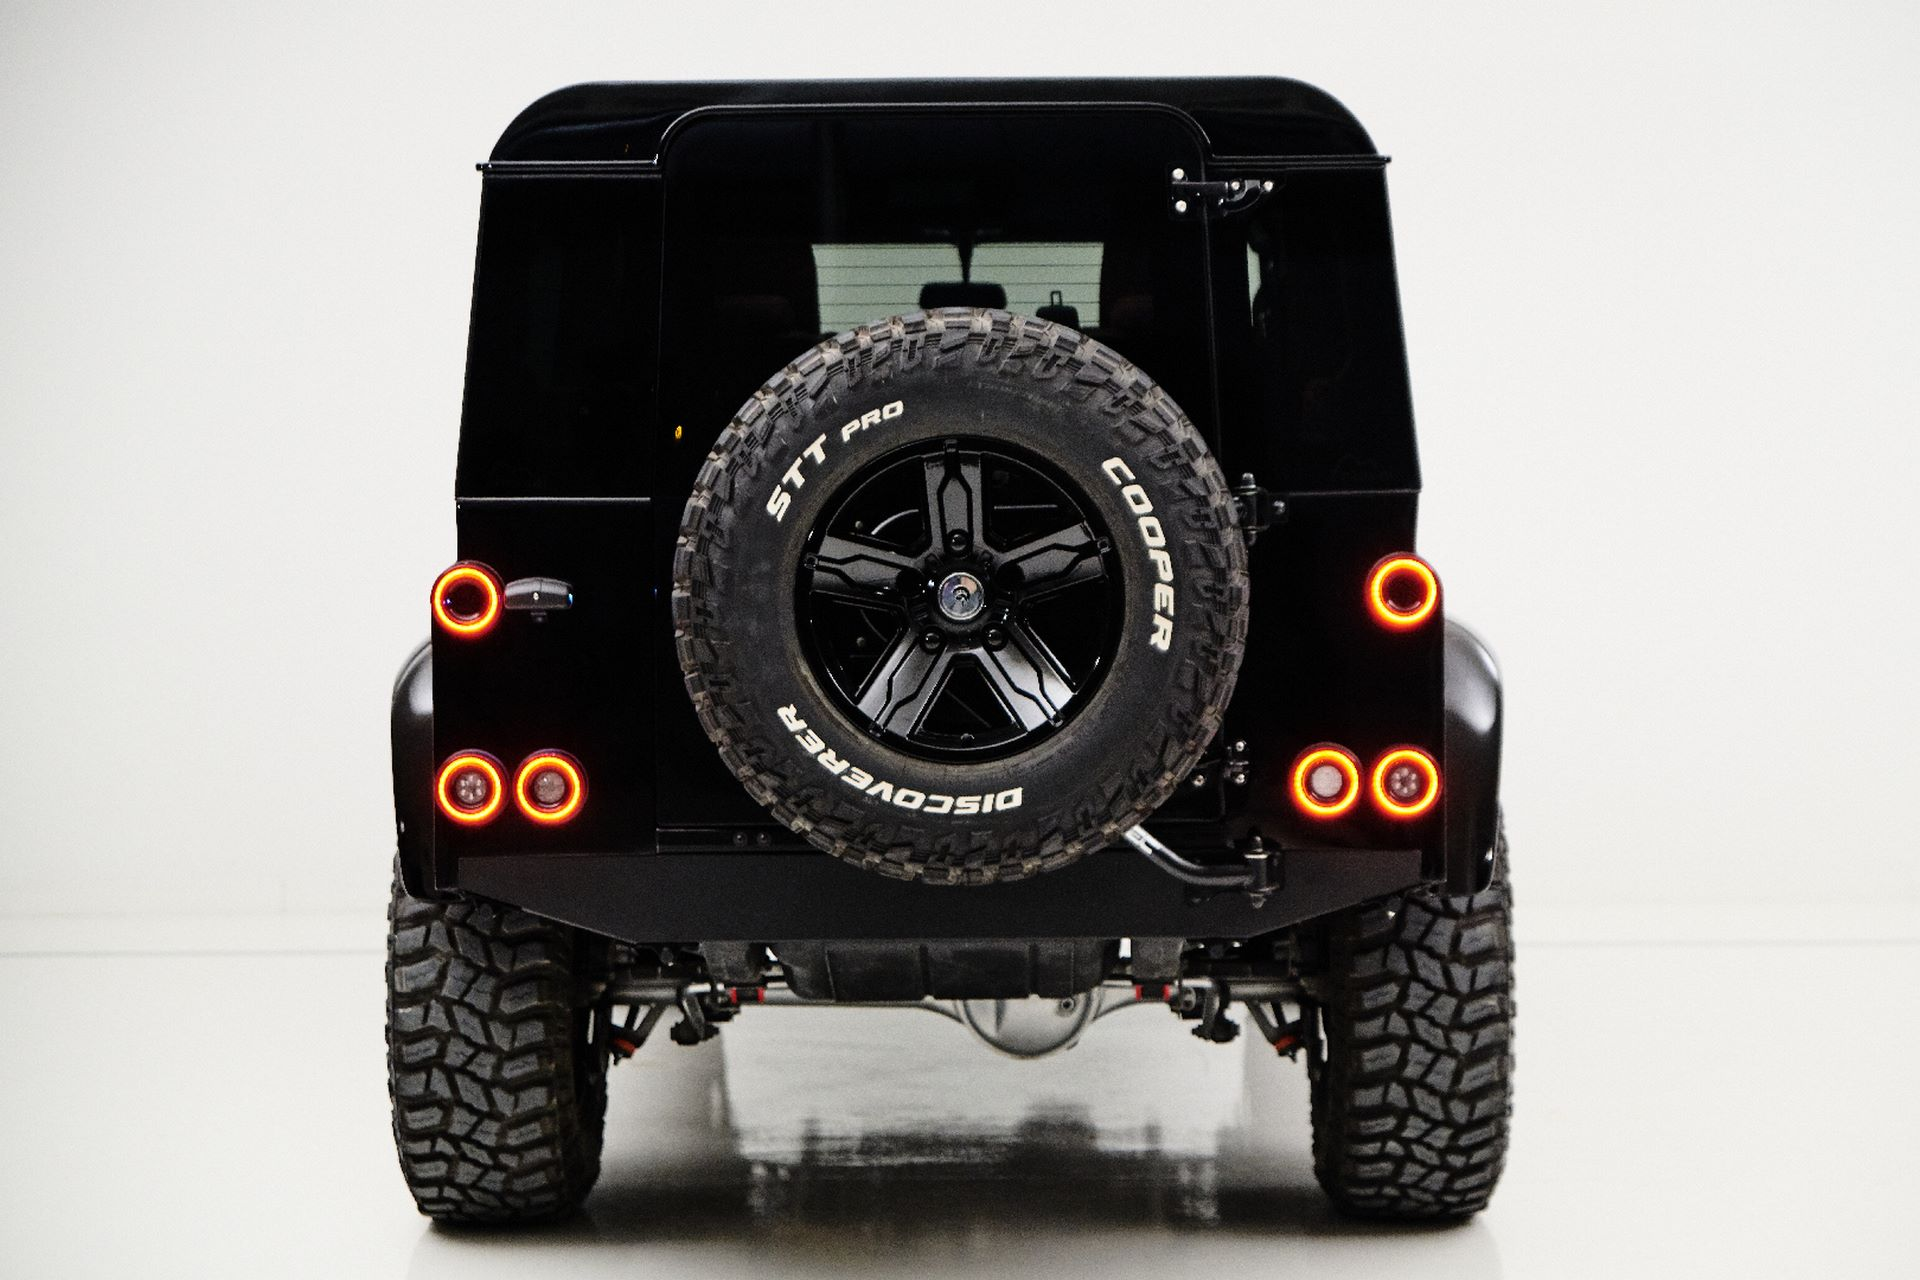 Porsche-911-964-Turbo-and-Land-Rover-Defender-by-Ares-Design-10